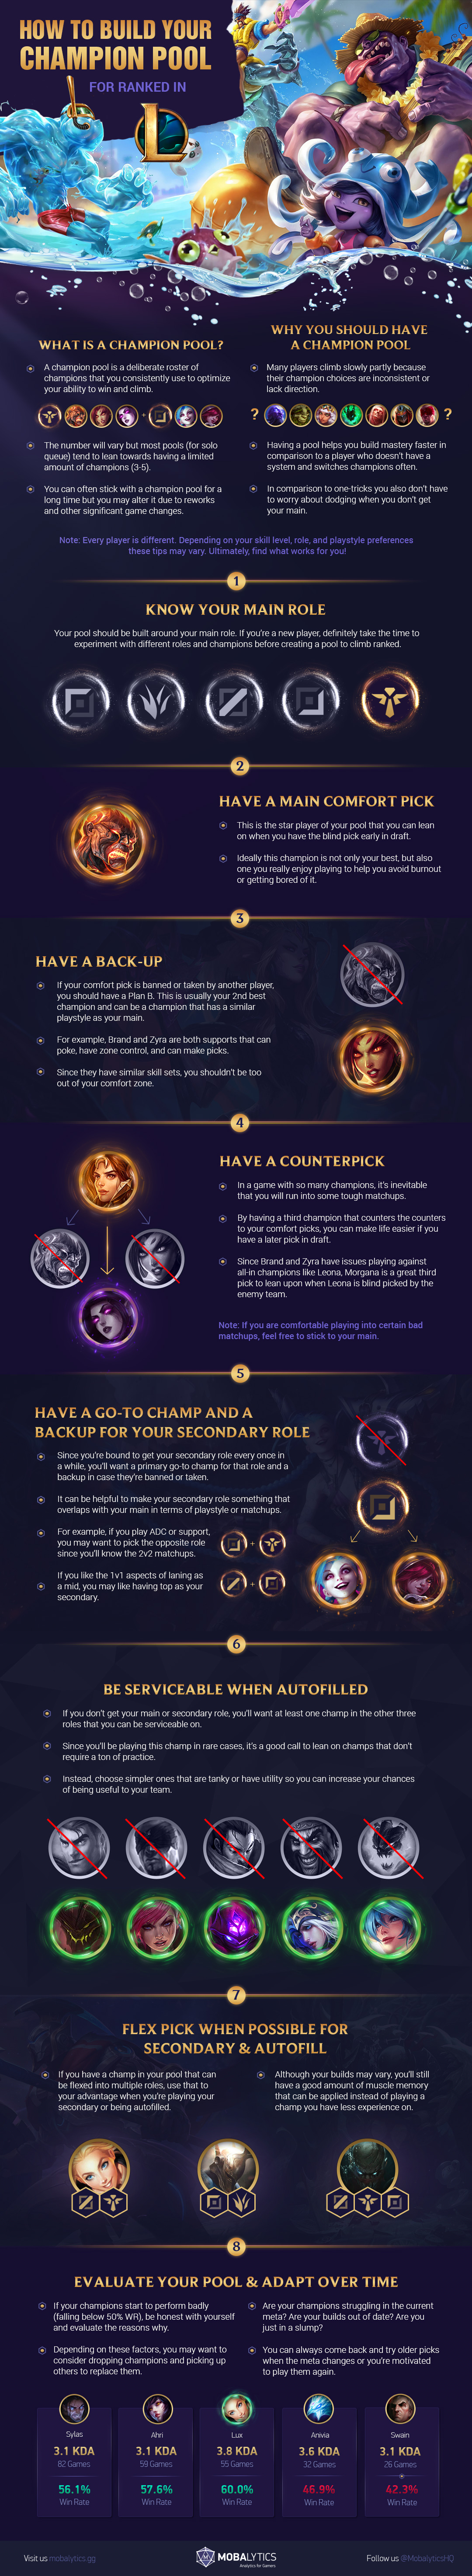 How to Build your Champion Pool